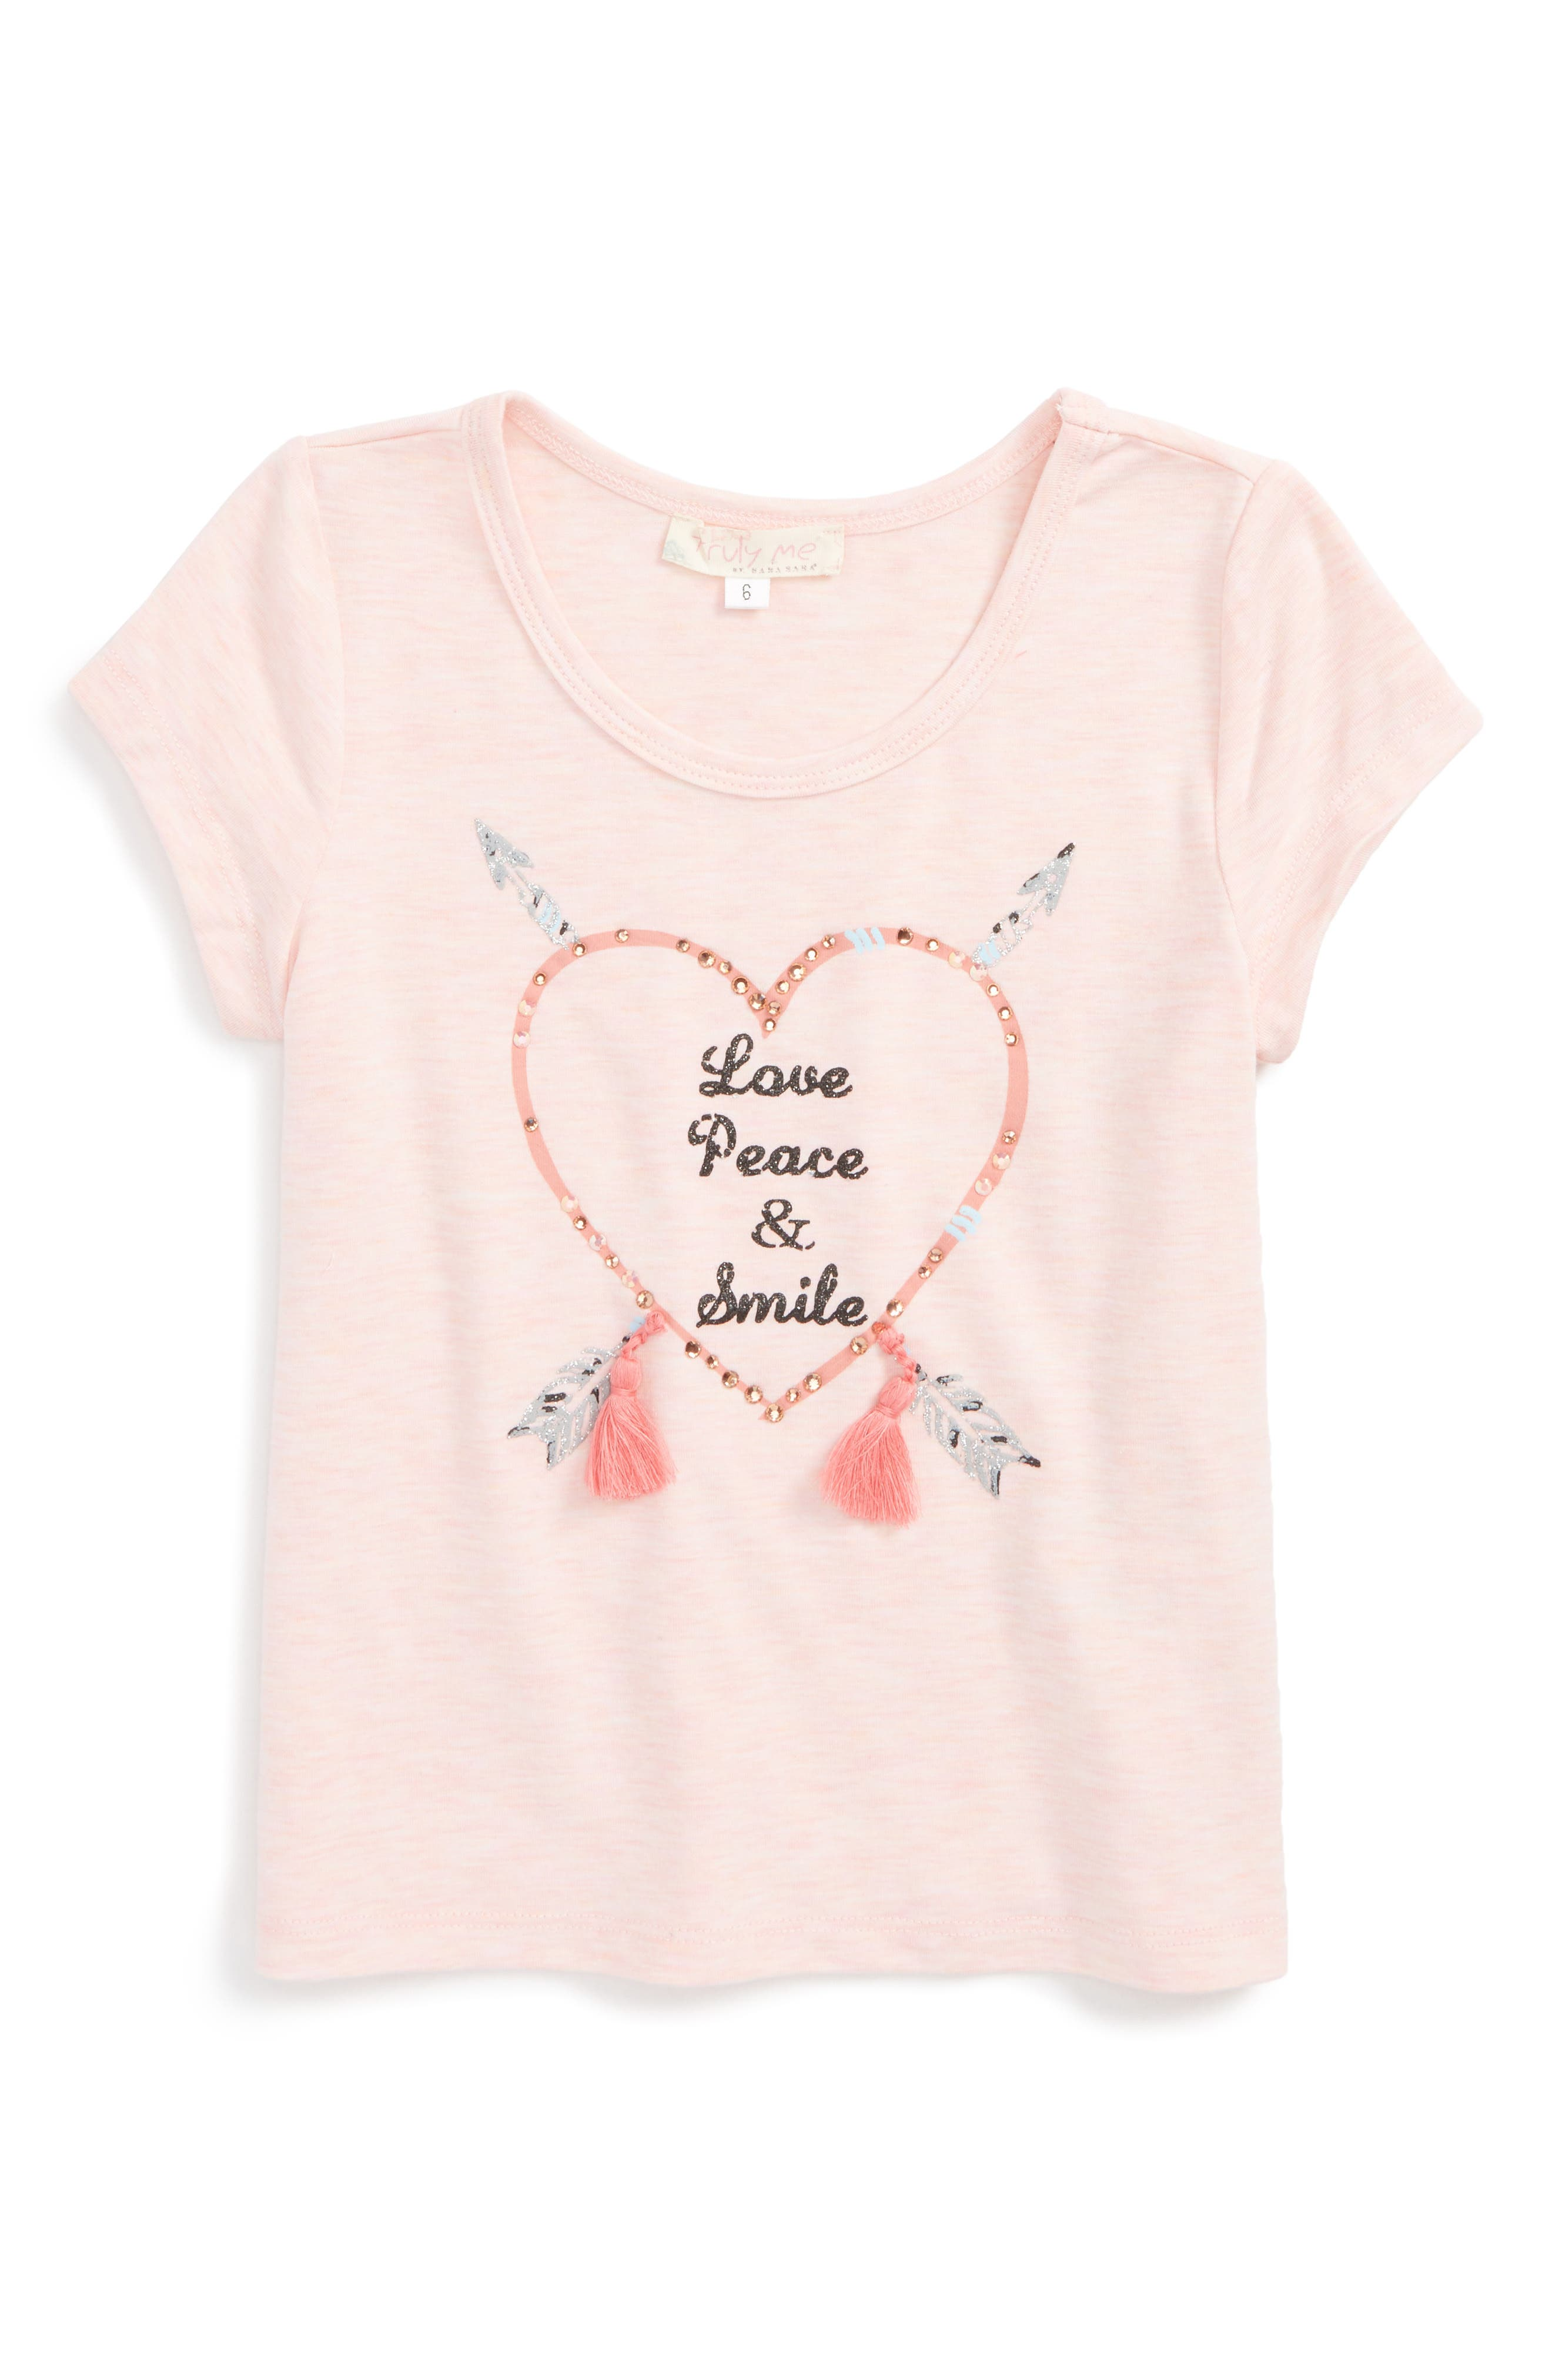 Love, Peace, Smile Embellished Graphic Tee,                         Main,                         color, Light Pink